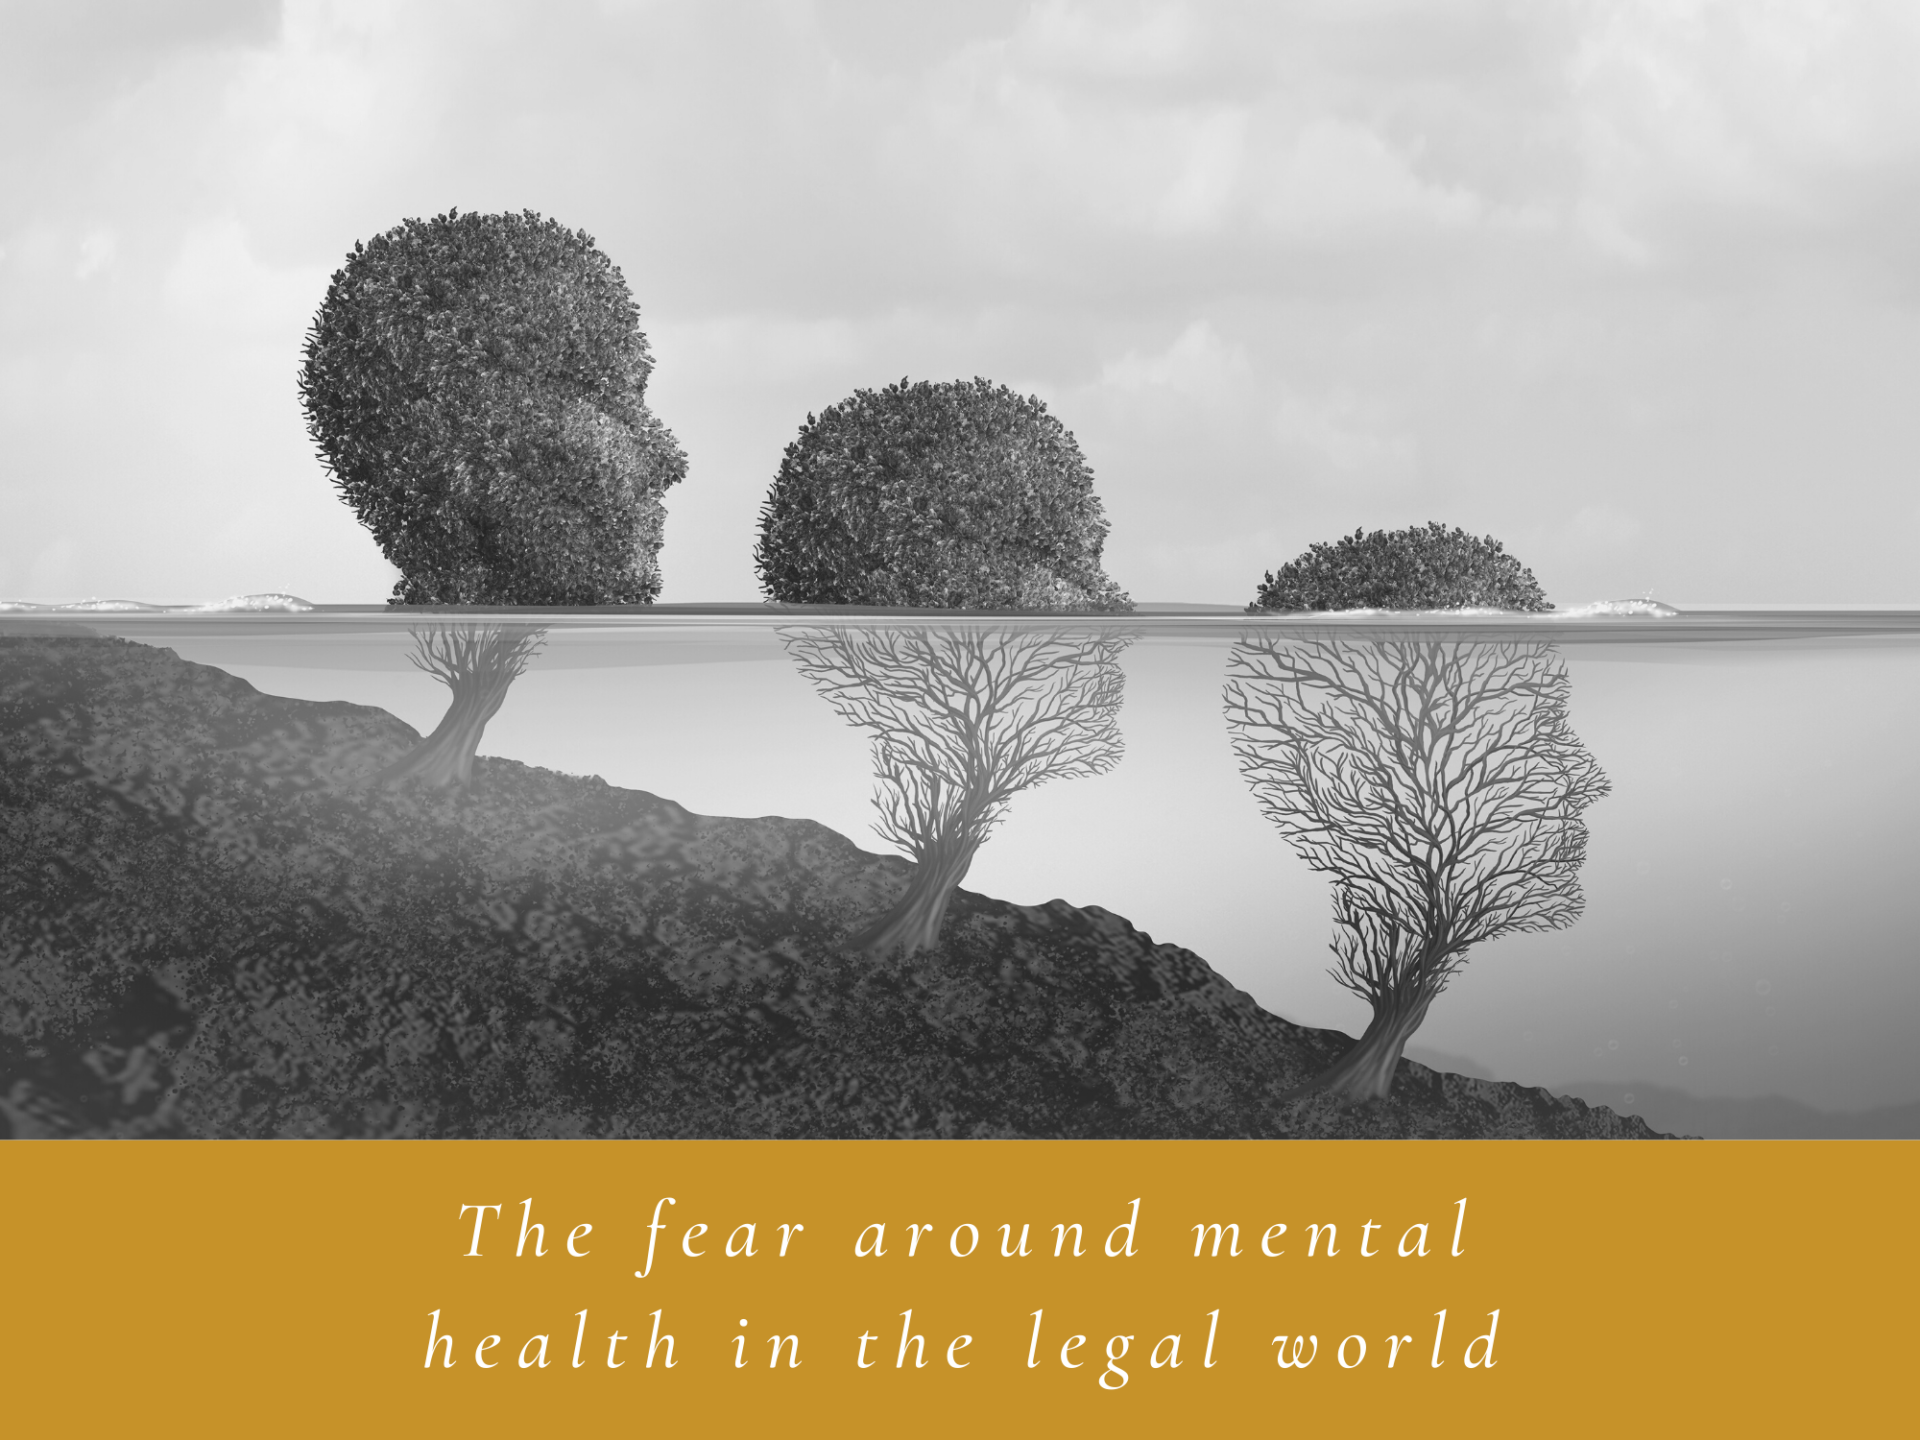 The fear around mental health in the legal world